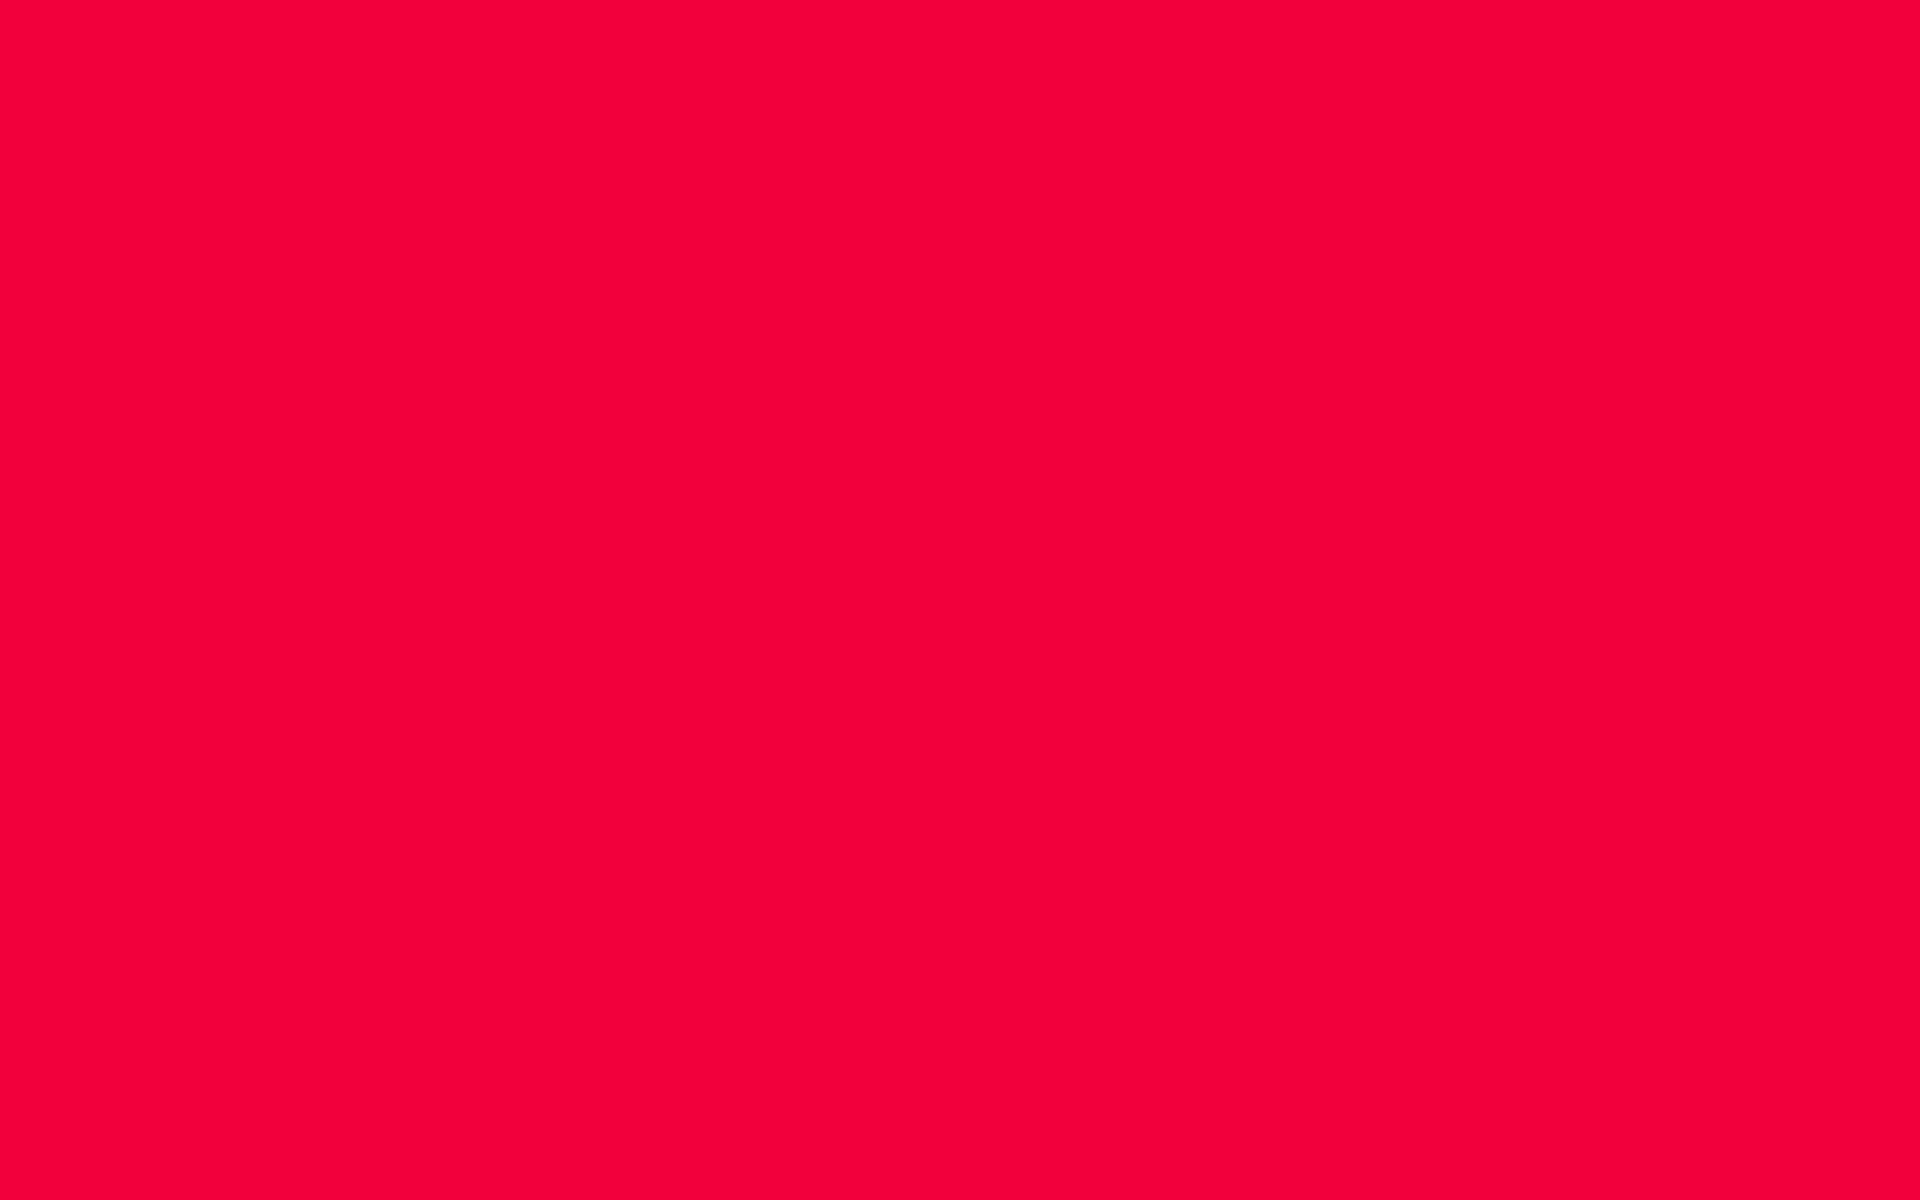 1920x1200 Red Munsell Solid Color Background